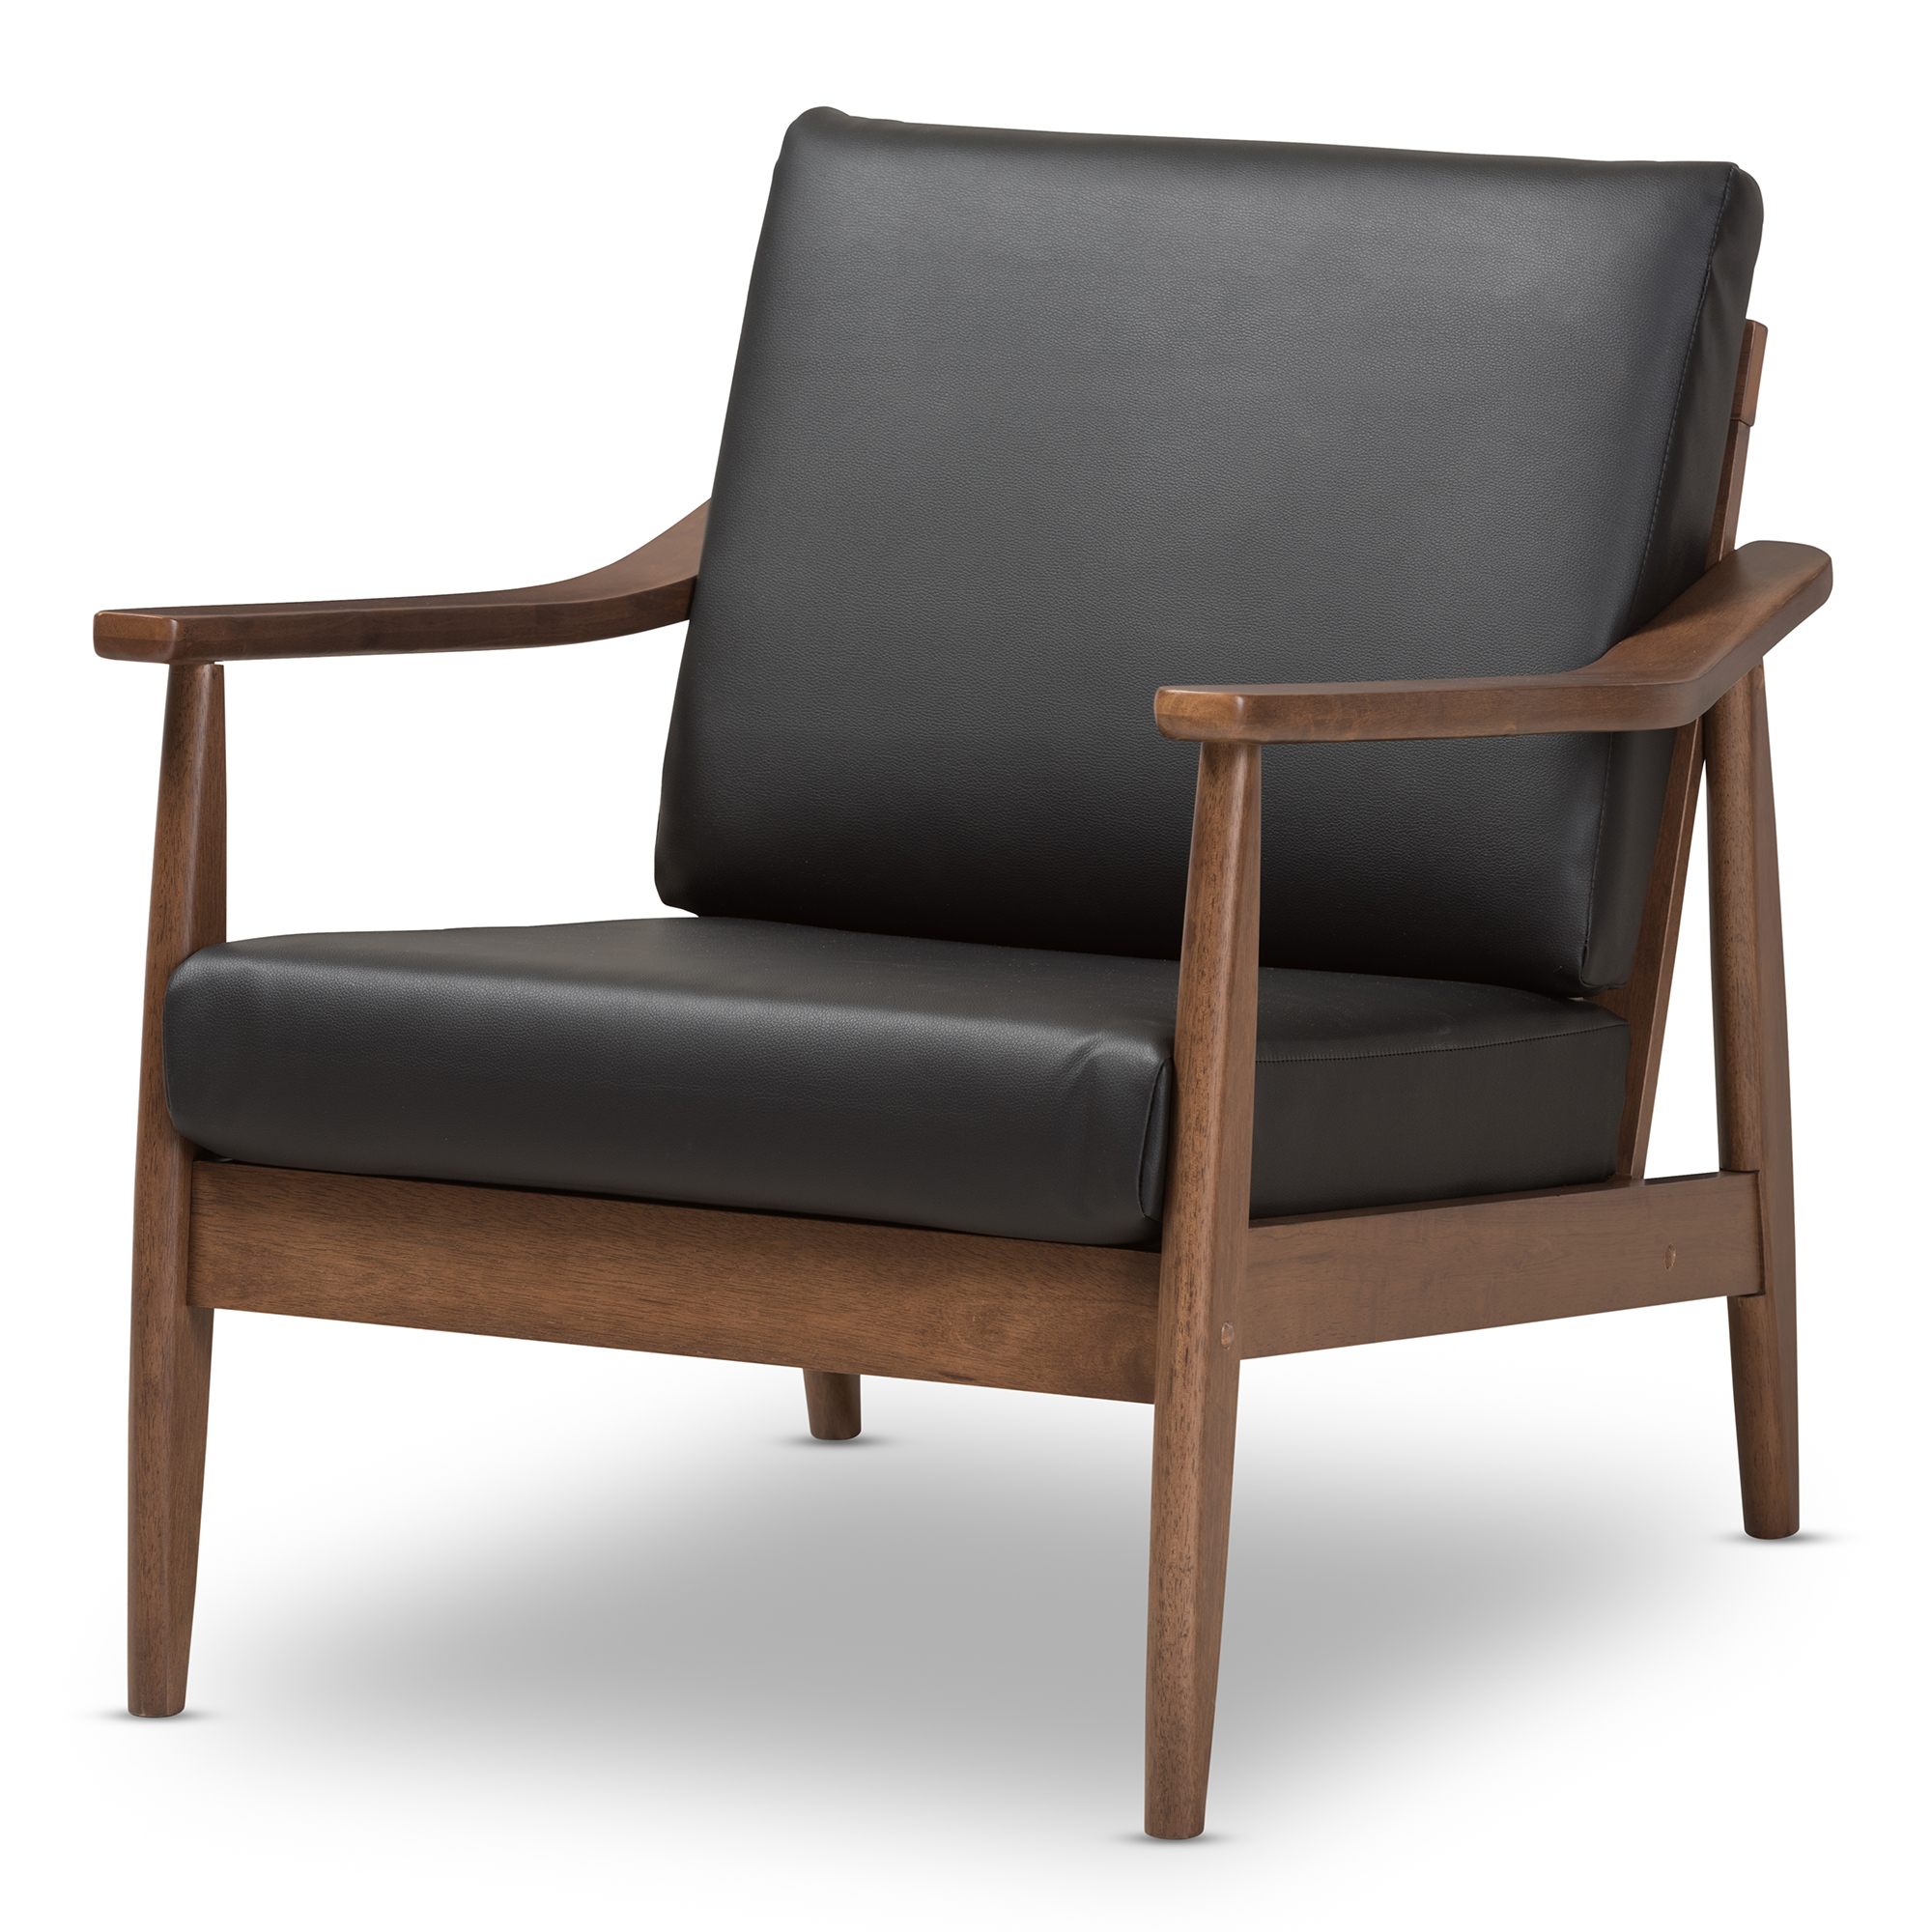 Baxton Studio Venza Mid Century Modern Walnut Wood Black Faux Leather  Lounge Chair Affordable Modern